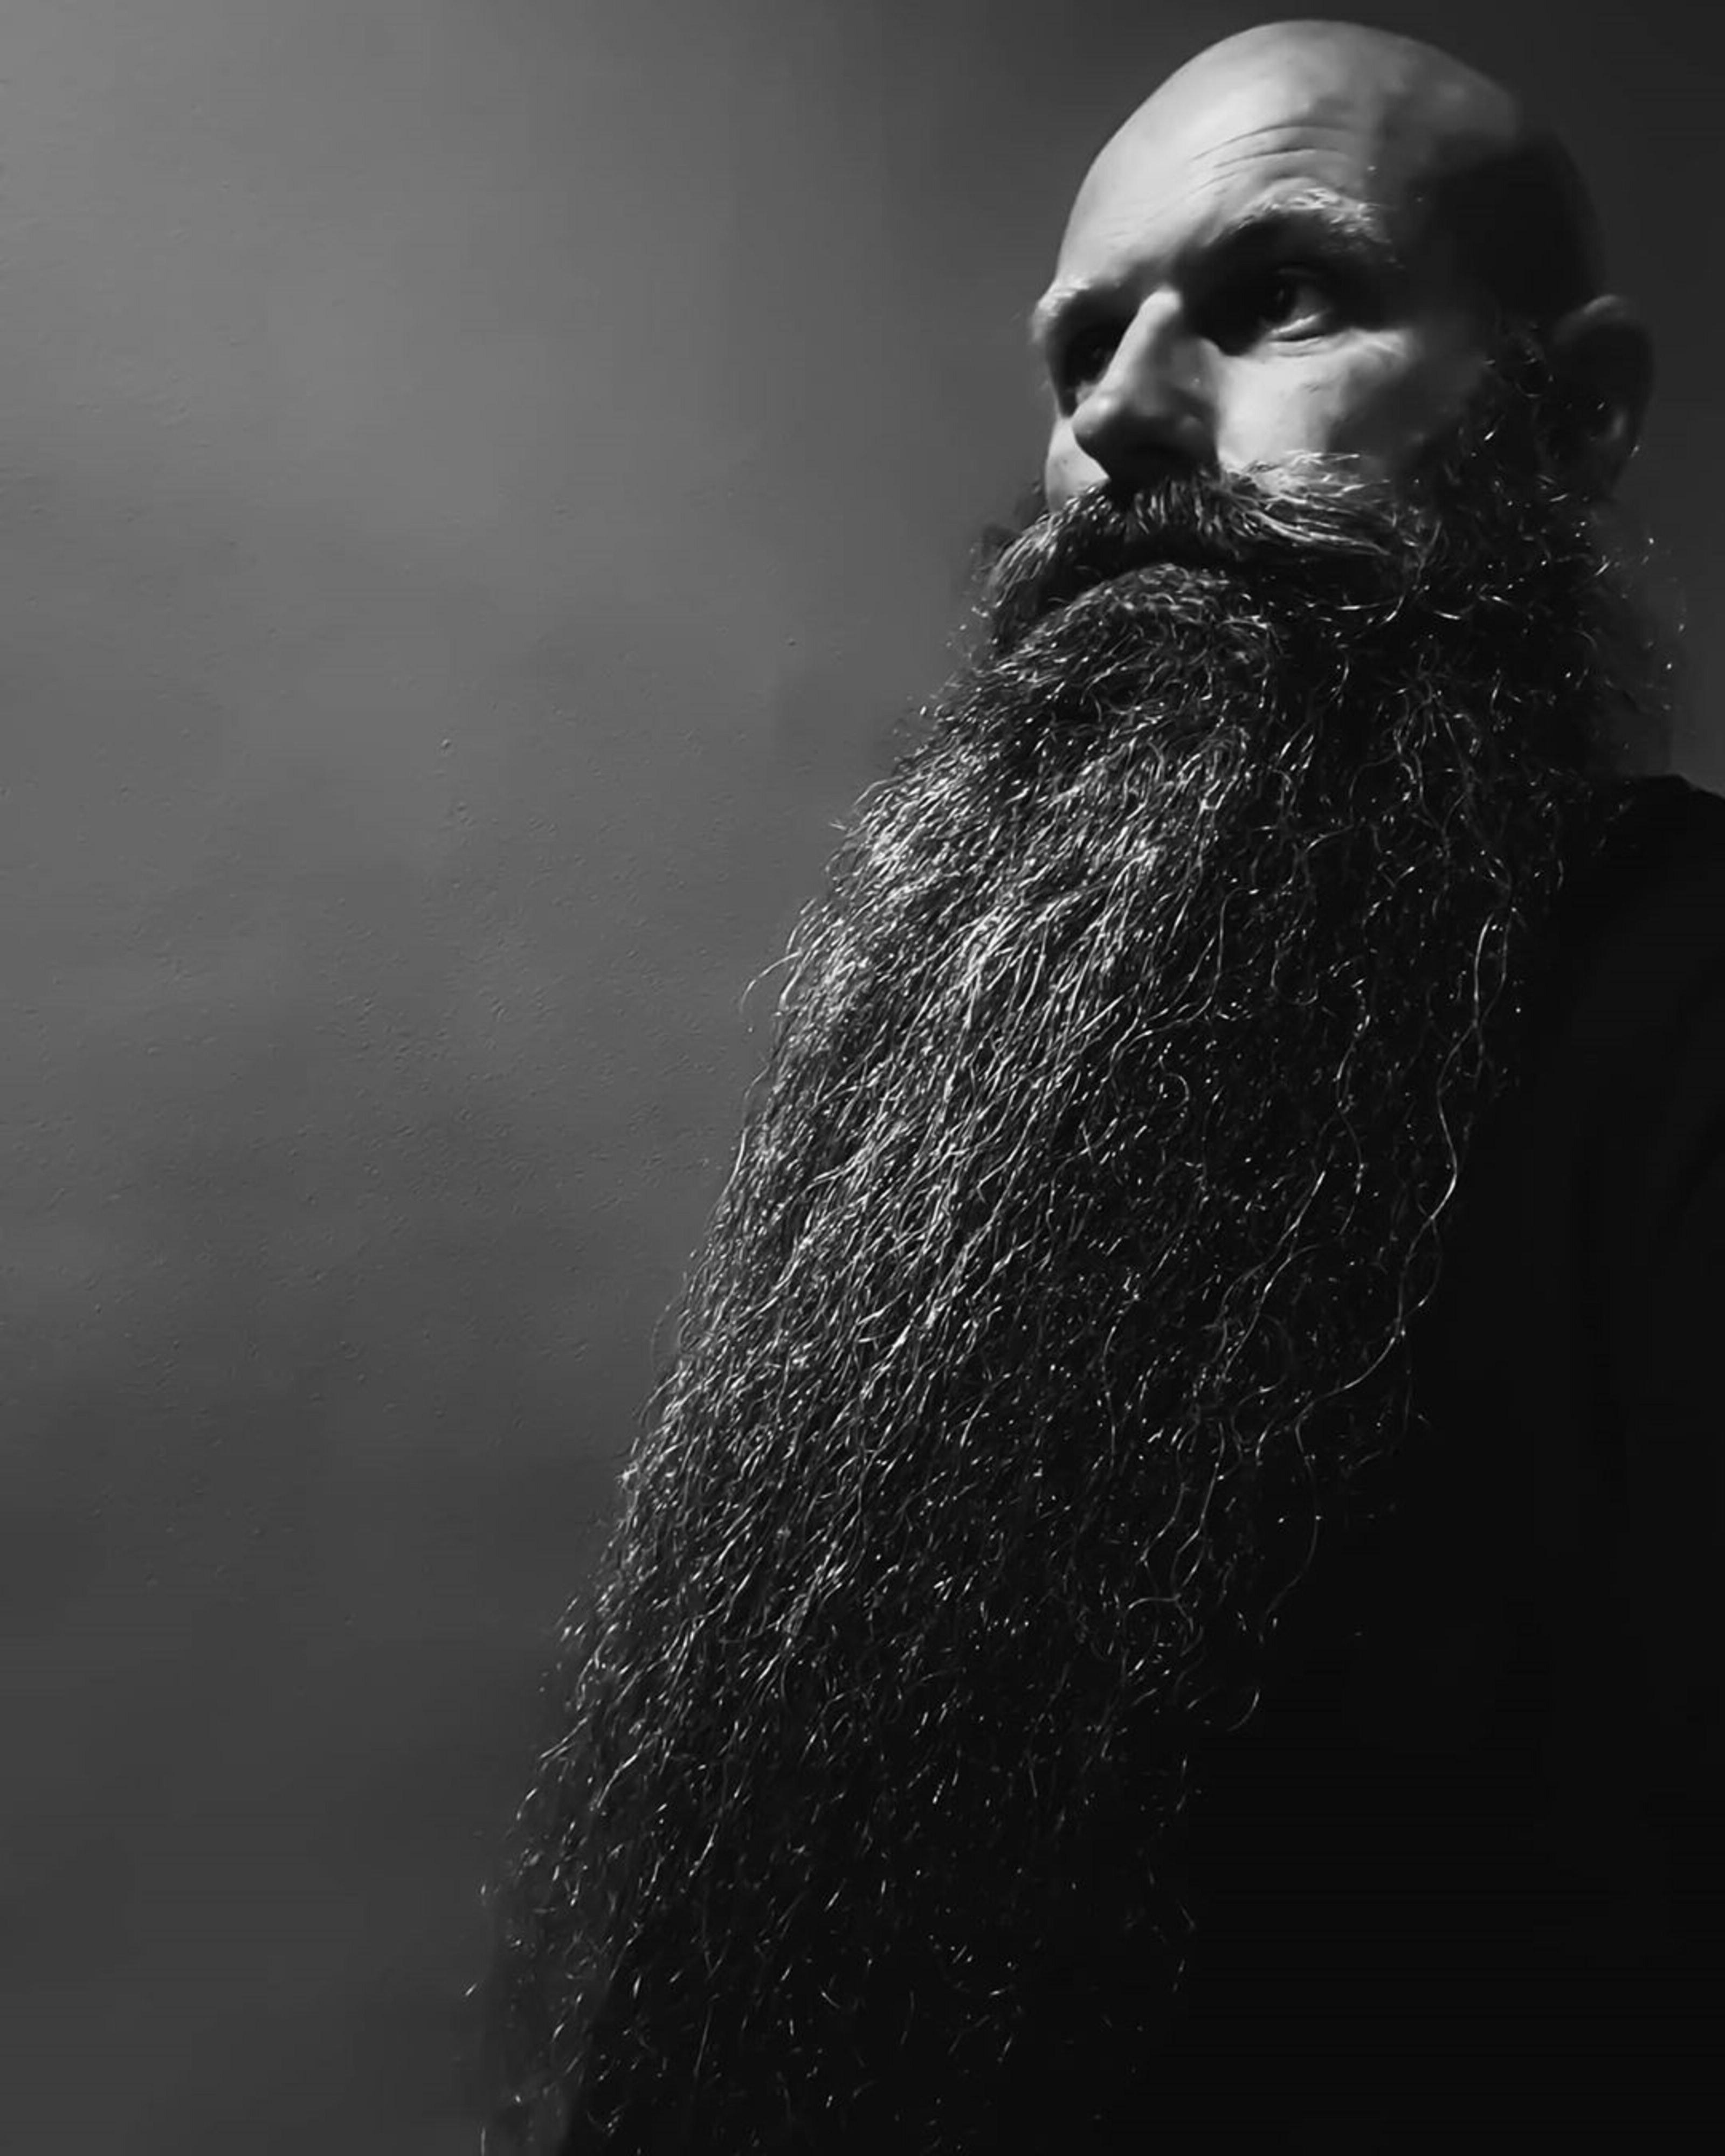 A long beard in the wizard style.